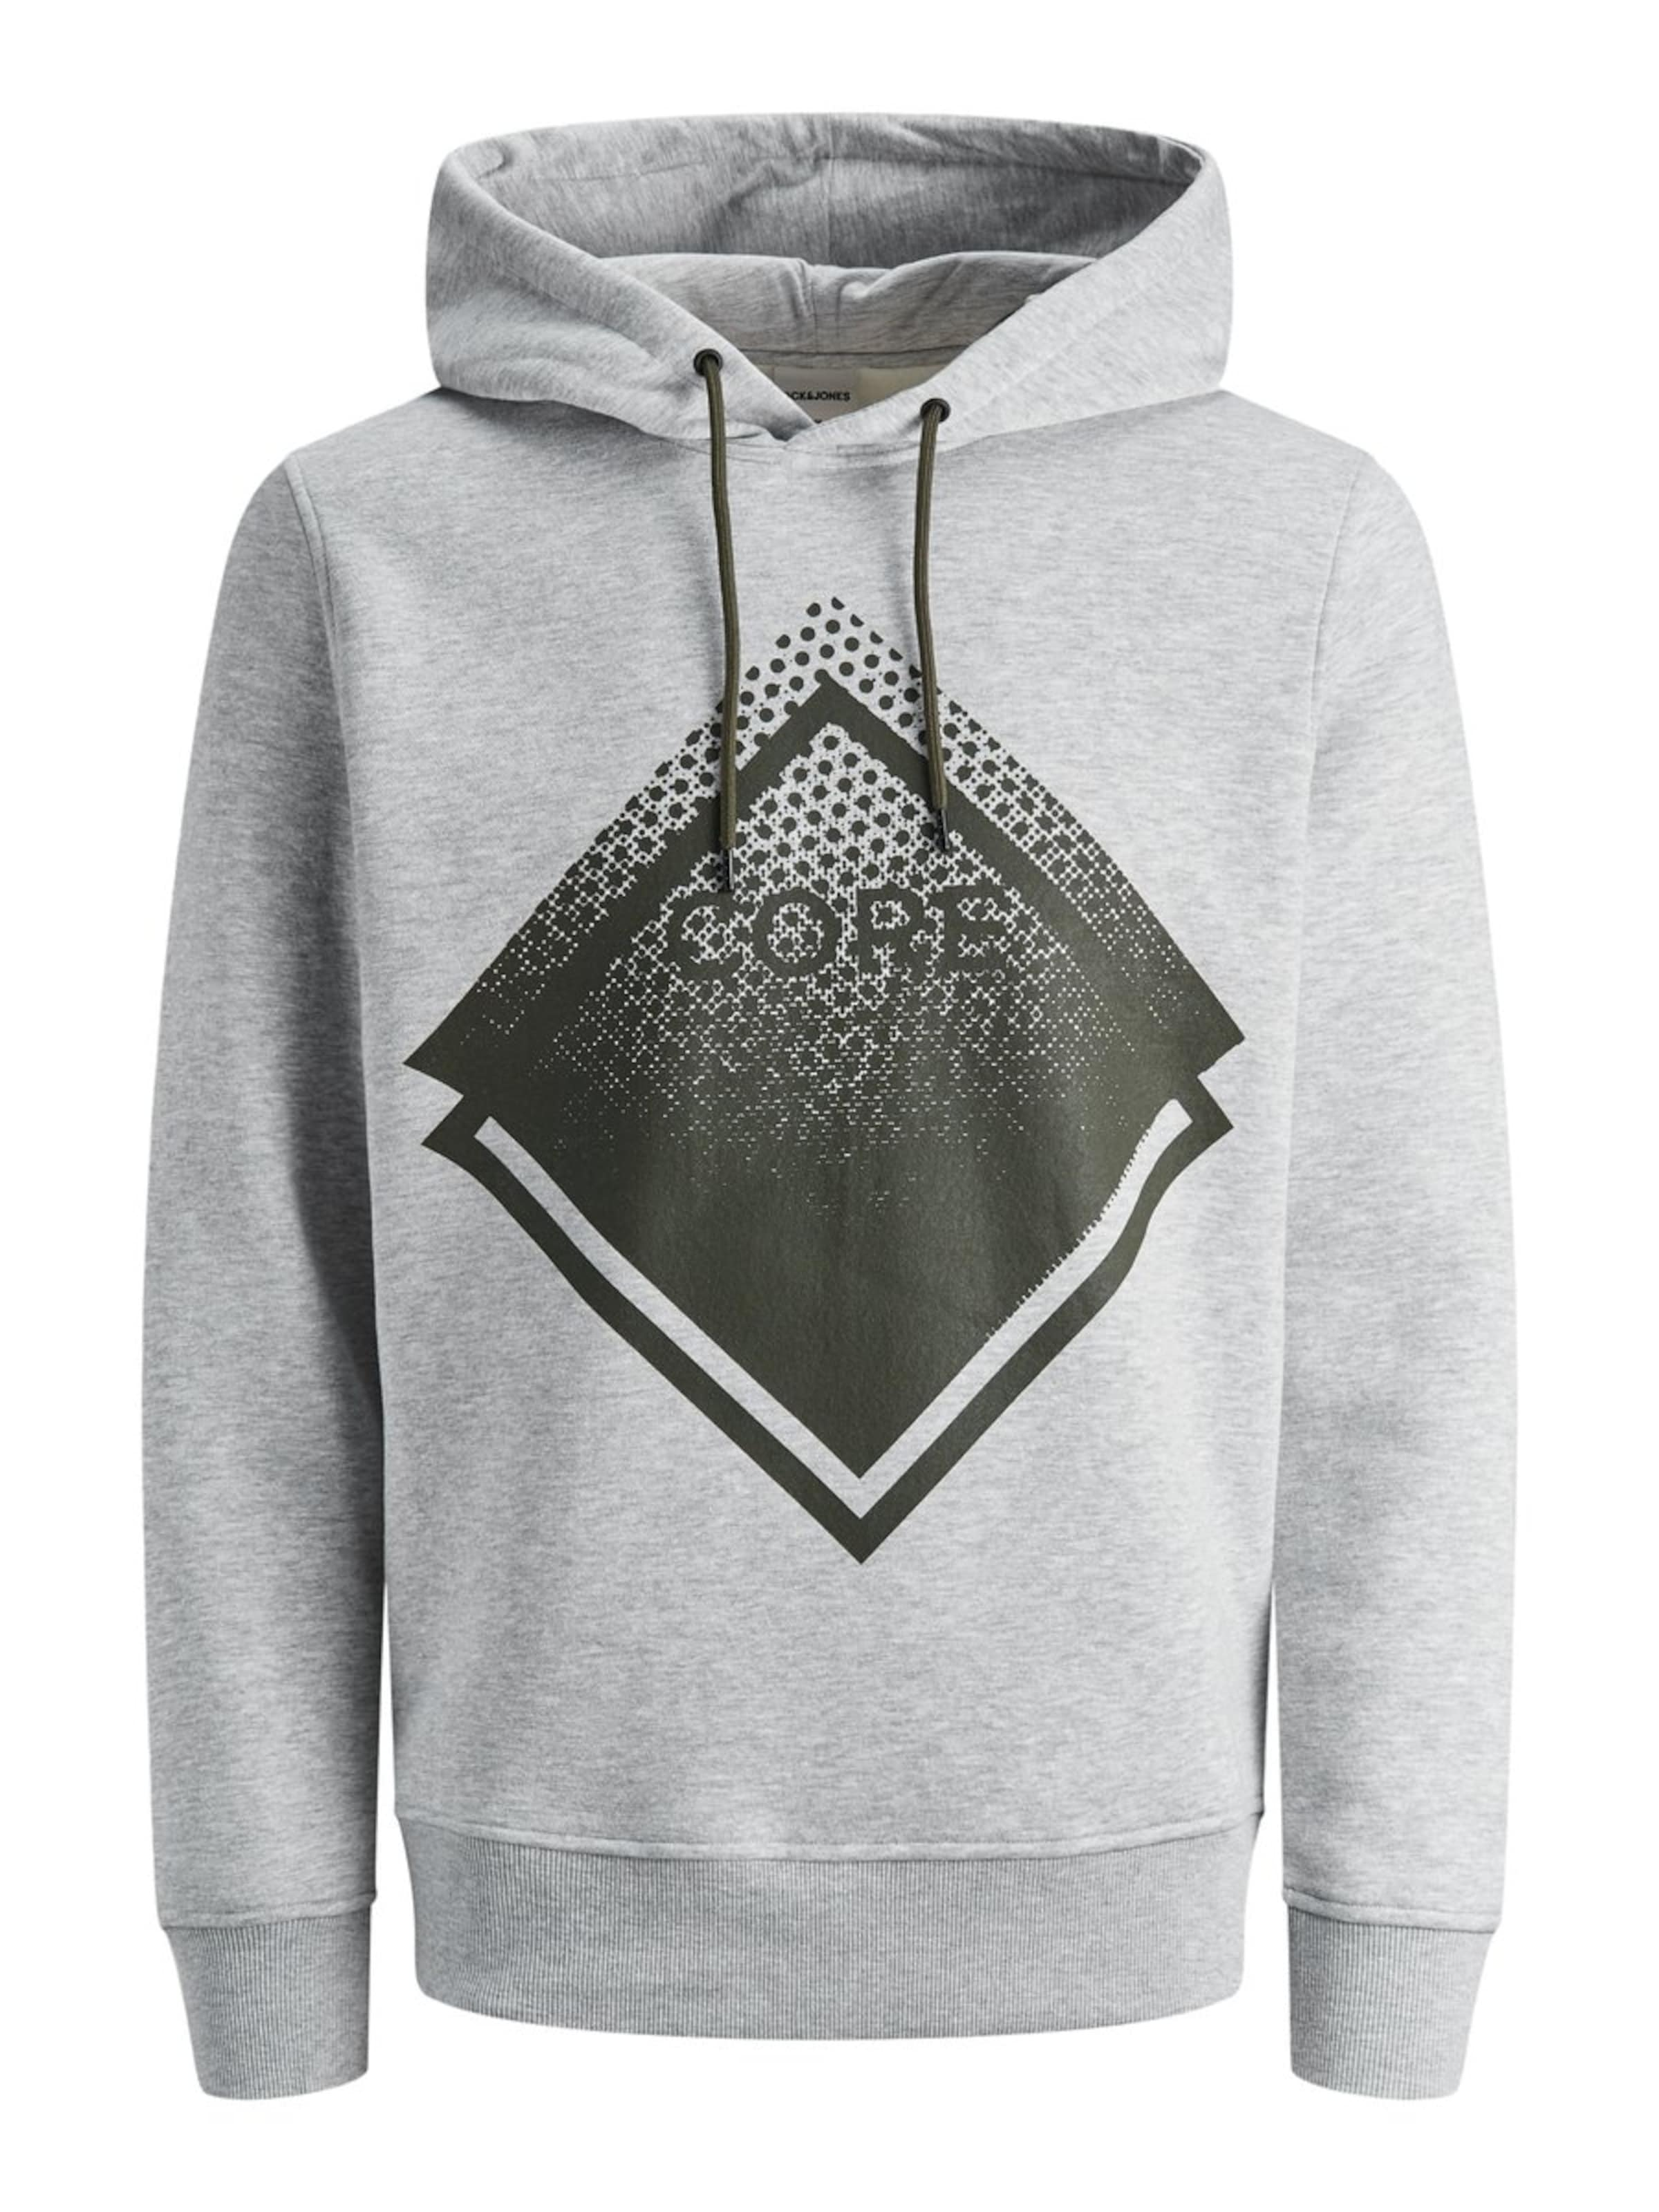 ChinéKaki Jones En Sweat Jackamp; Gris shirt 0PwnkO